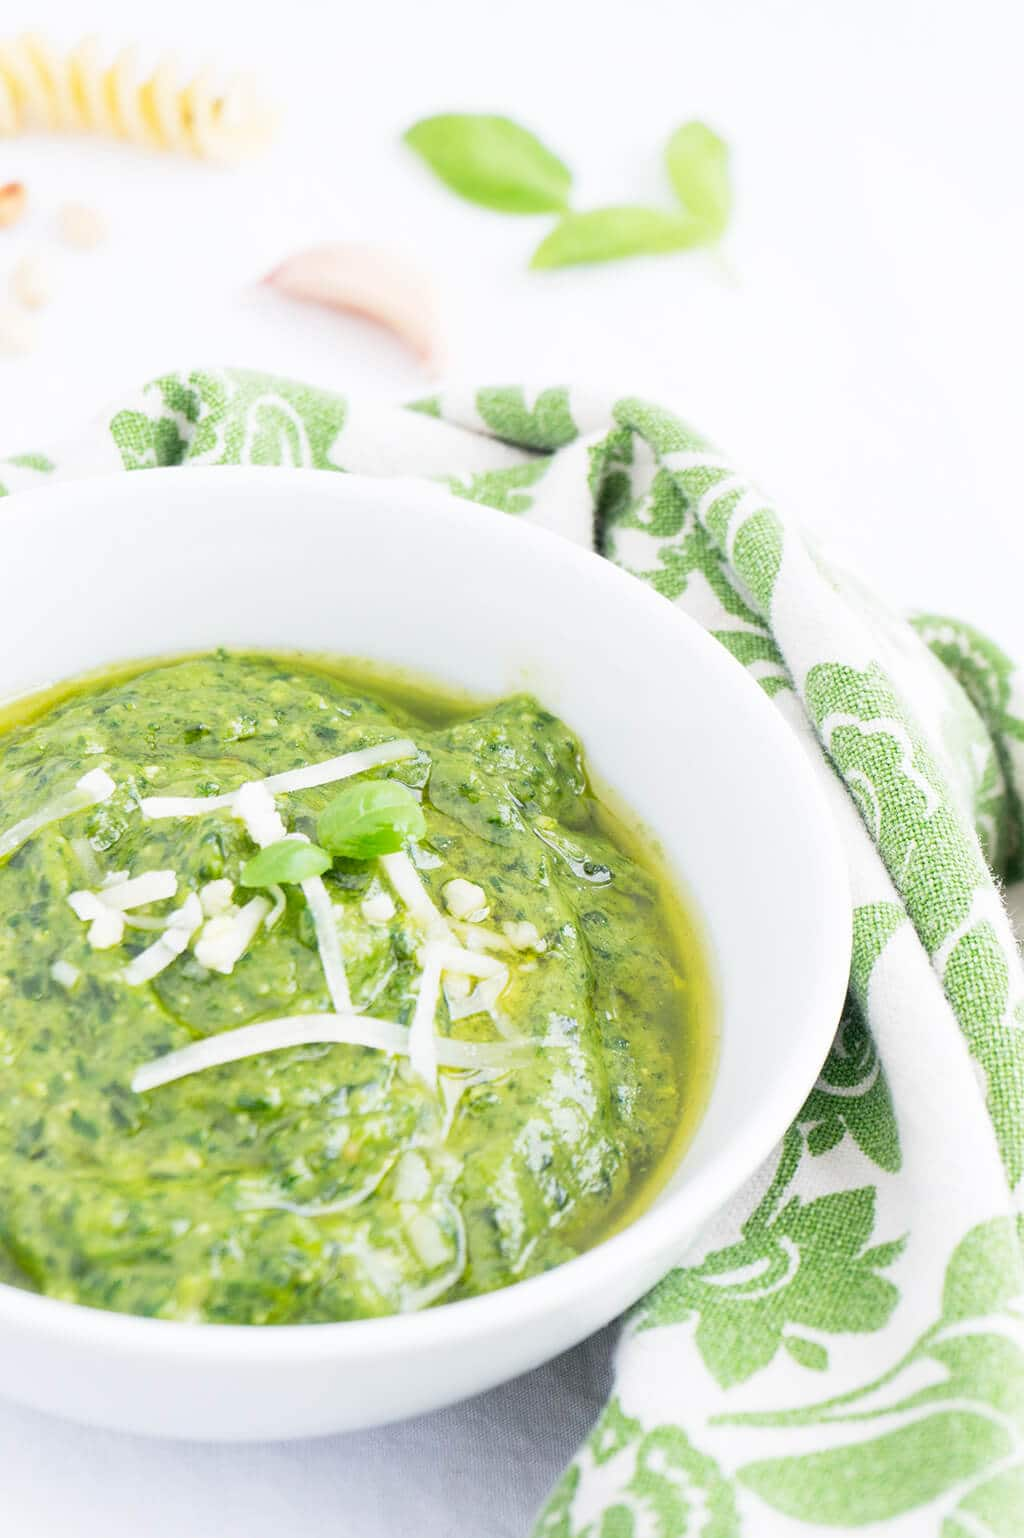 Make this delicious Spinach-Basil Pesto Sauce and get some Essential Tips for Bright Green Pesto   Recipe at OatandSesame.com